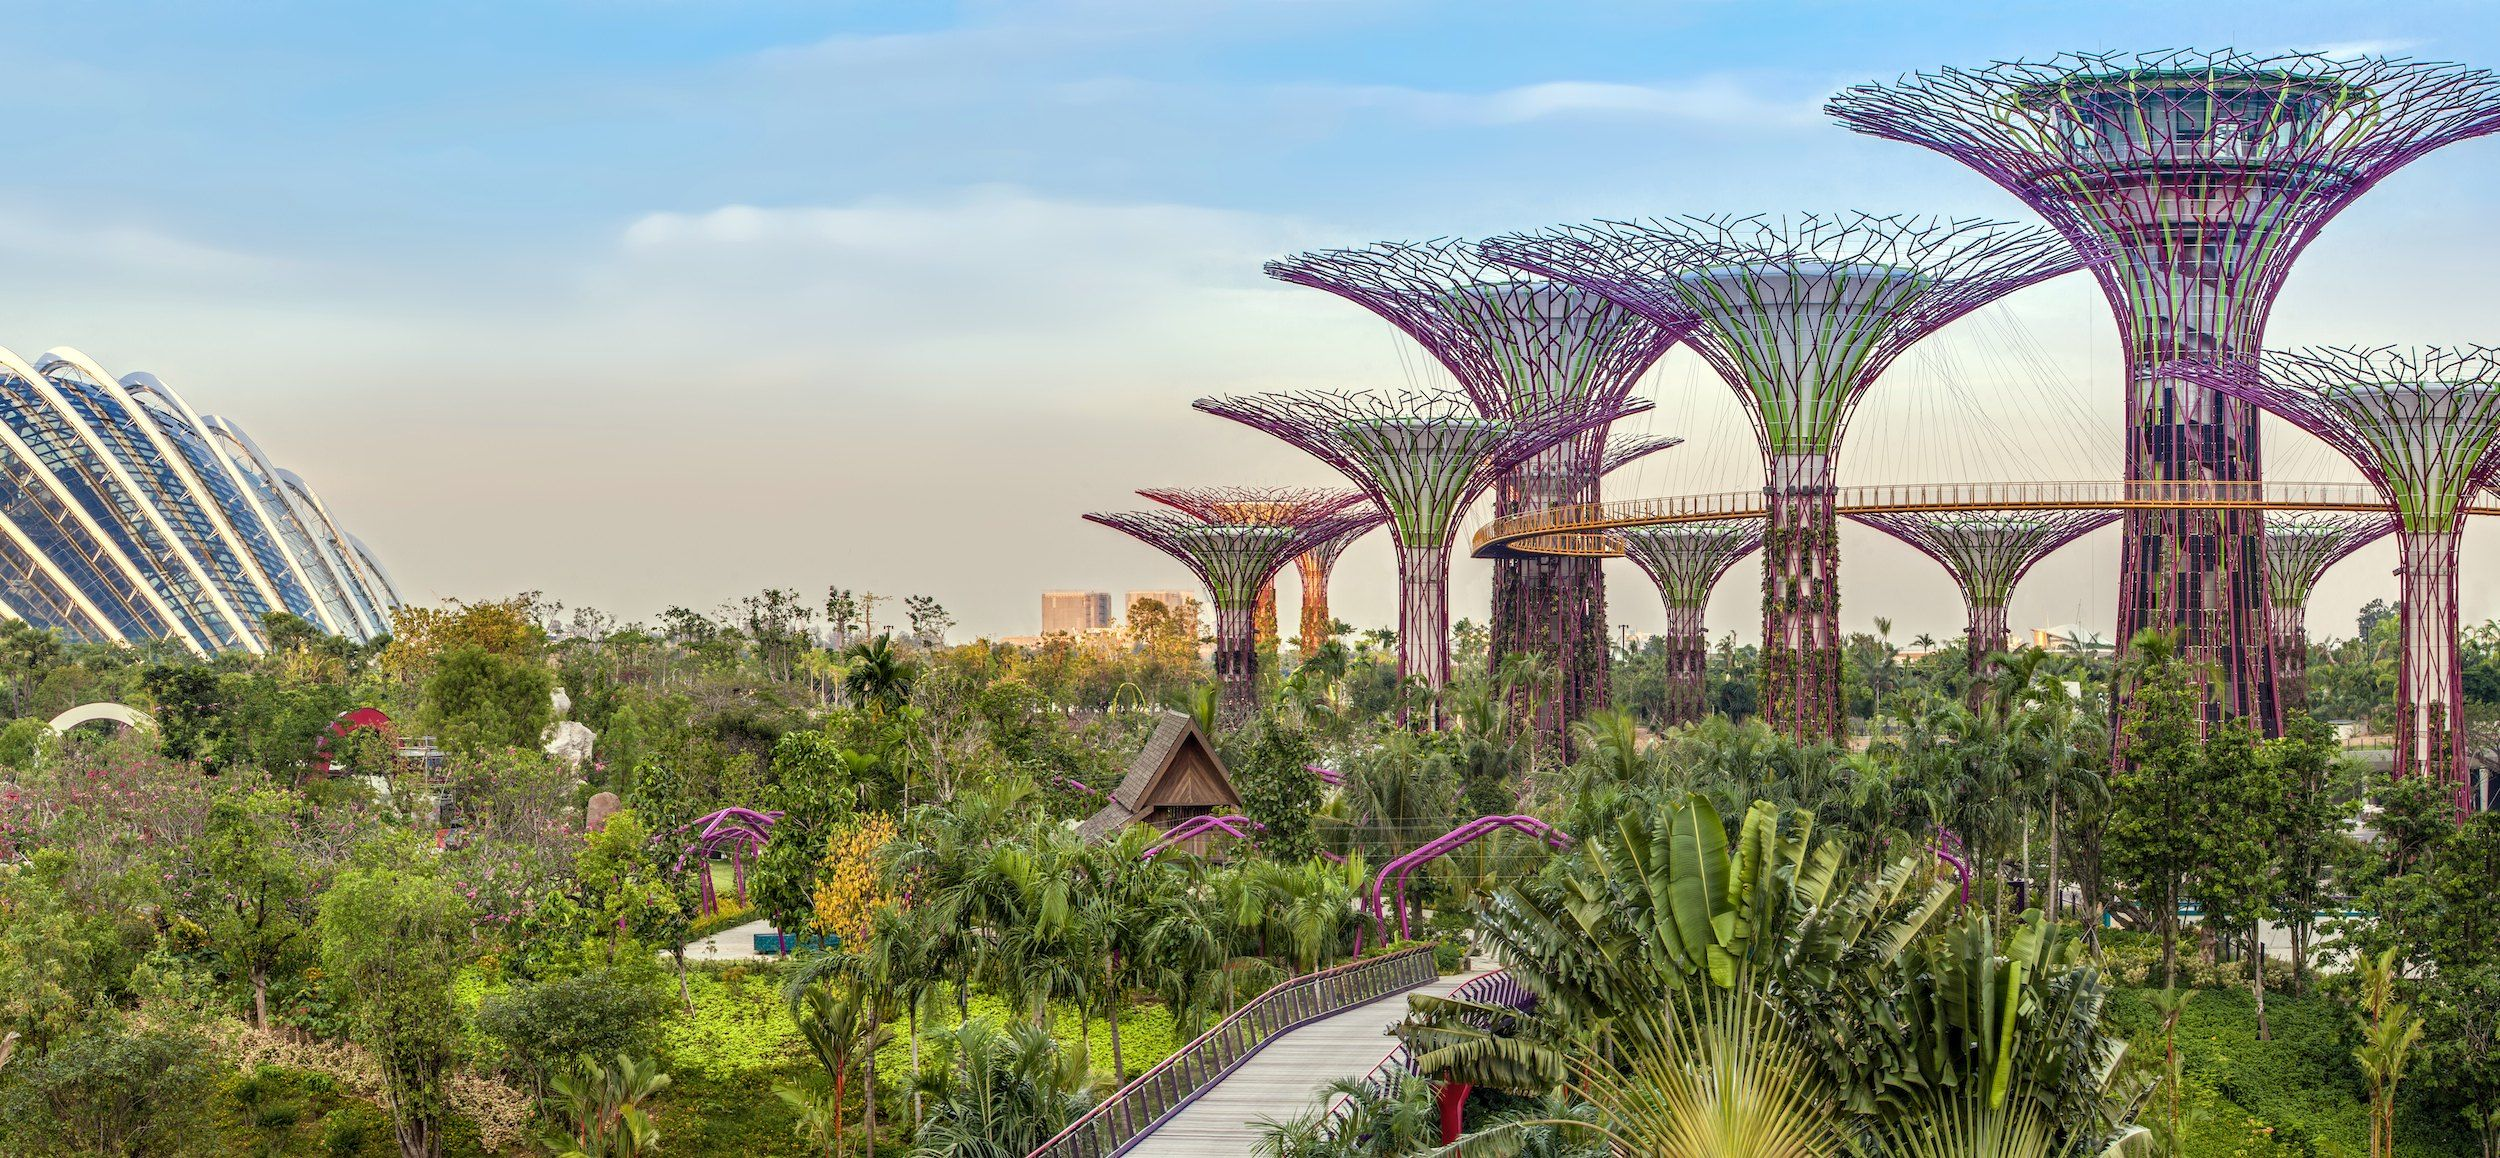 534463757b79c86484977437cf949352 - Distance From Marina Bay Sands To Gardens By The Bay